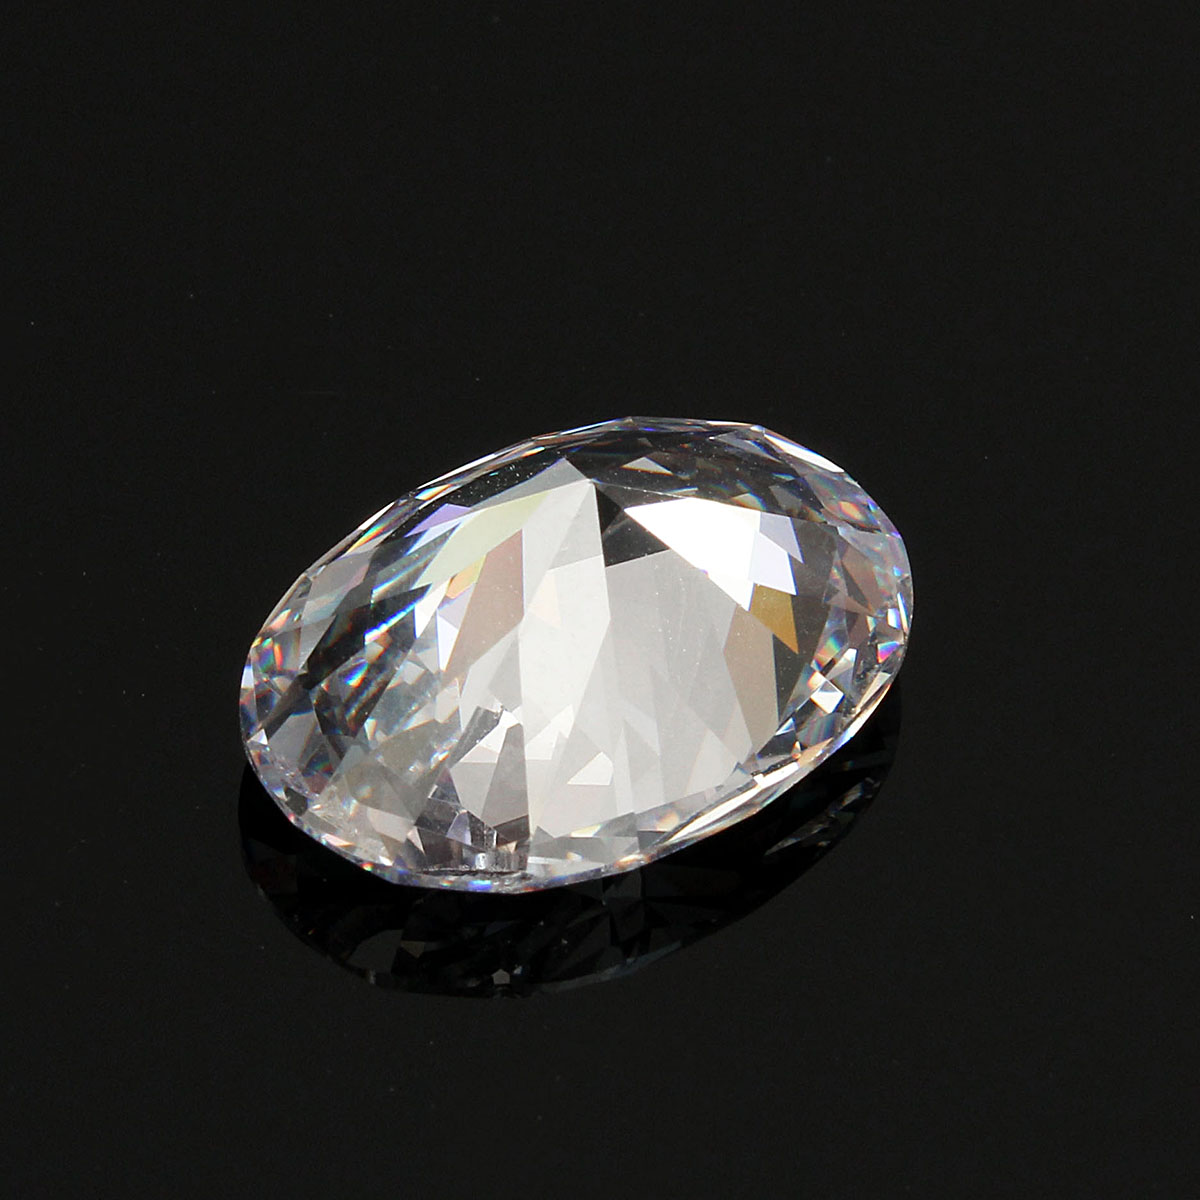 13x18mm Oval White Sapphire DIY Design Jewelry Gem Making Handmade